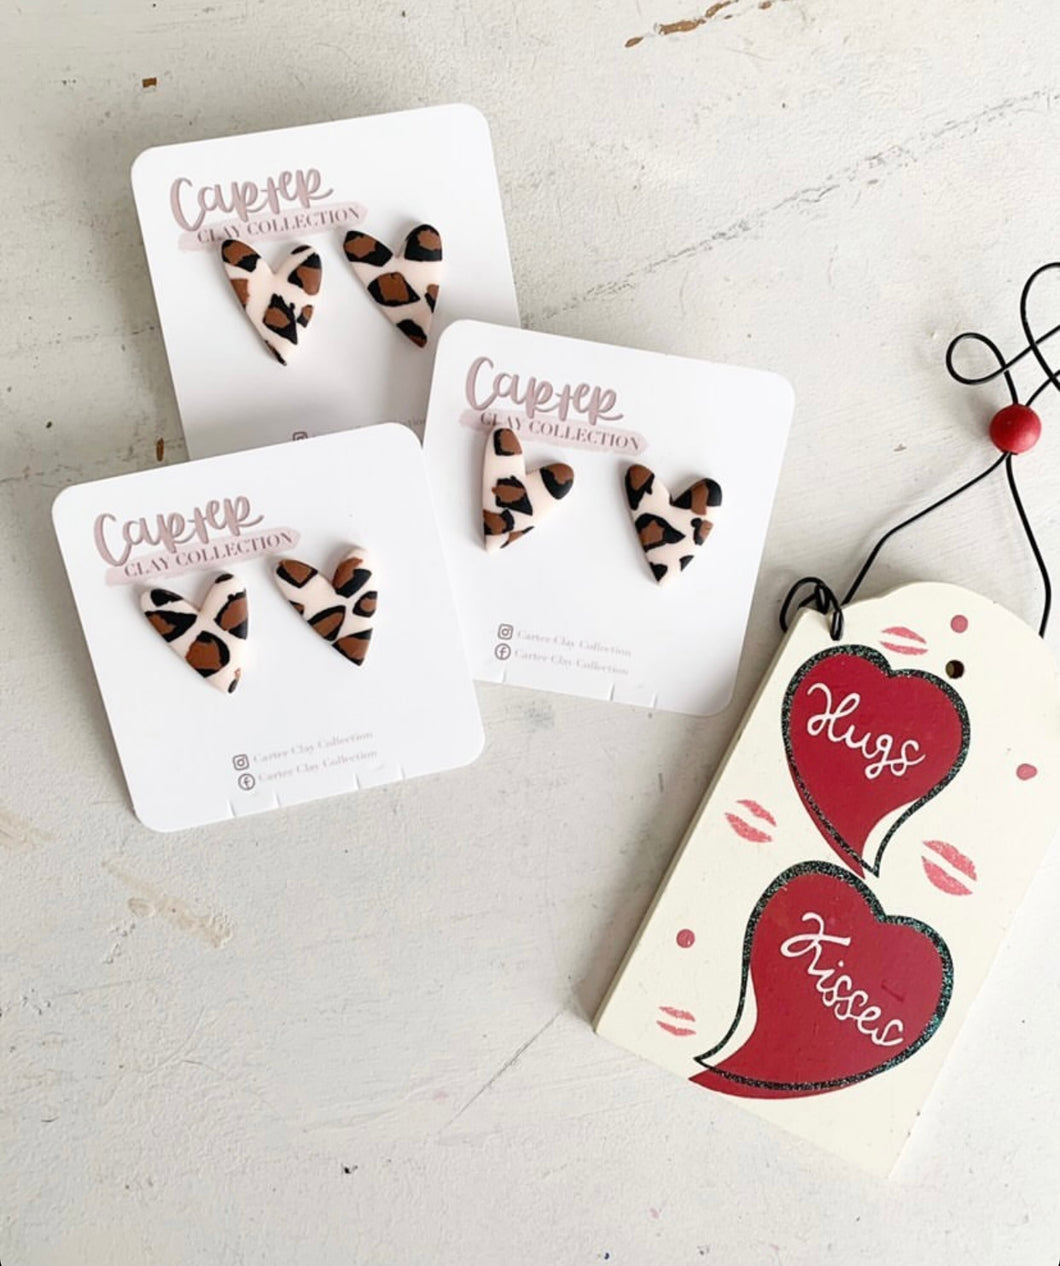 Carter Clay Collection | Cheetah Heart Earrings